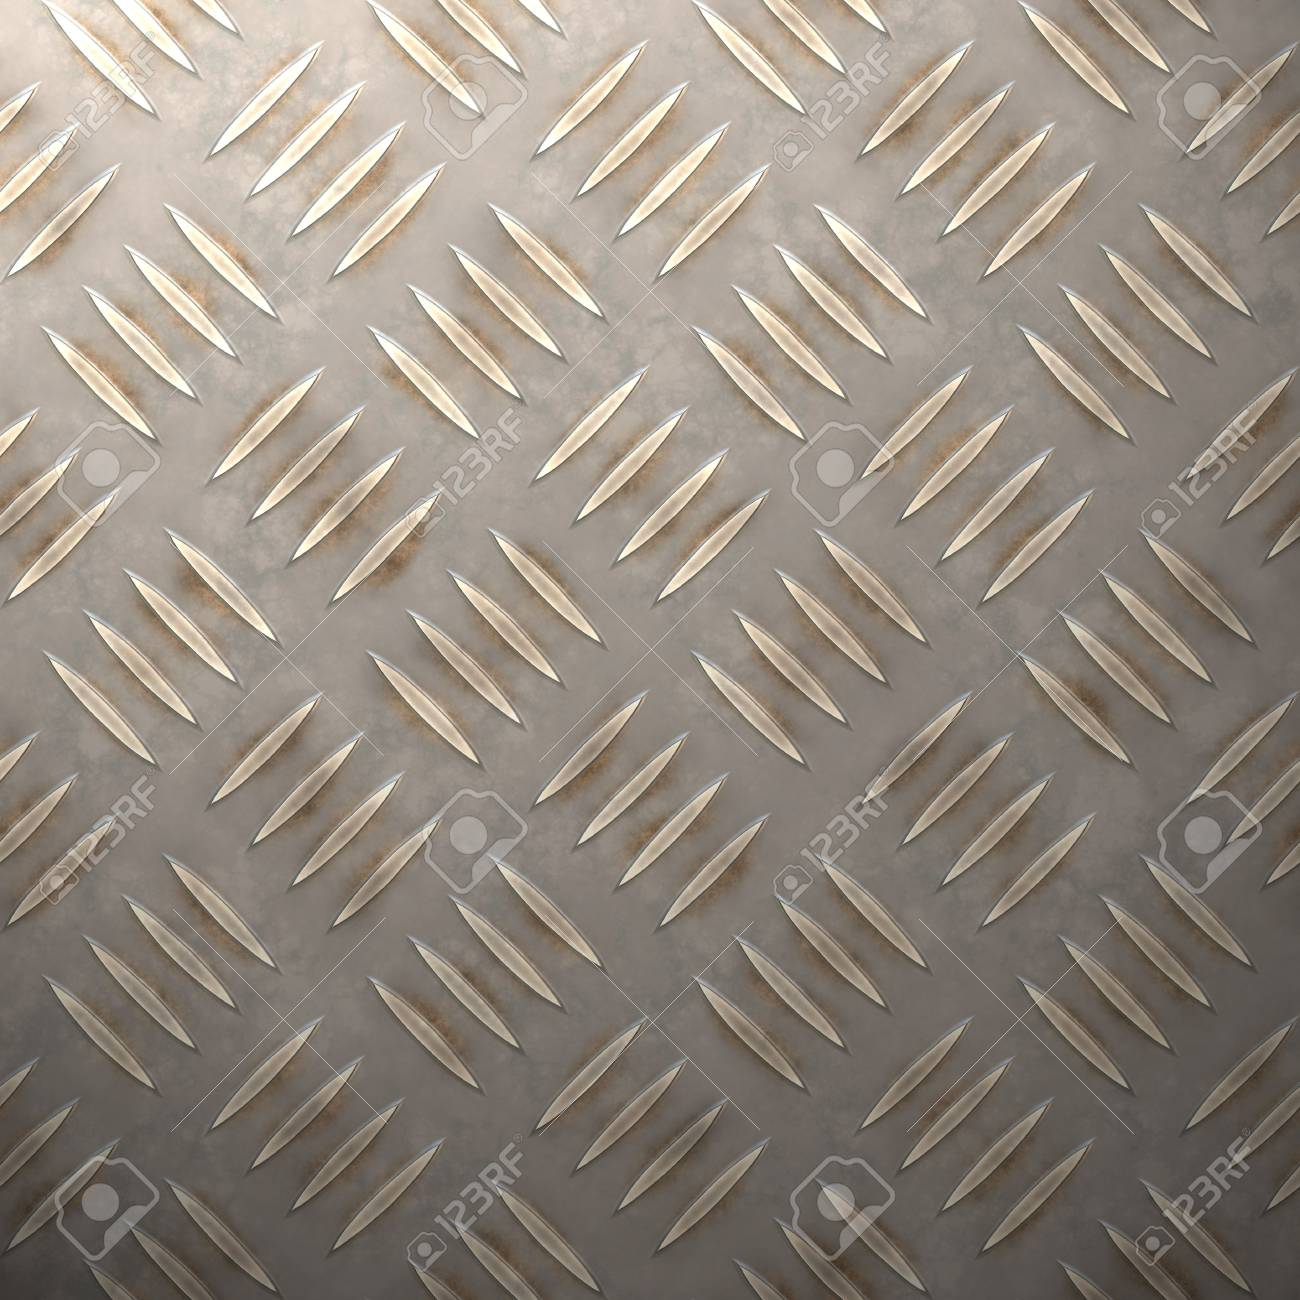 A diamond plate illustration that is ultra realistic. Stock Photo - 3168622